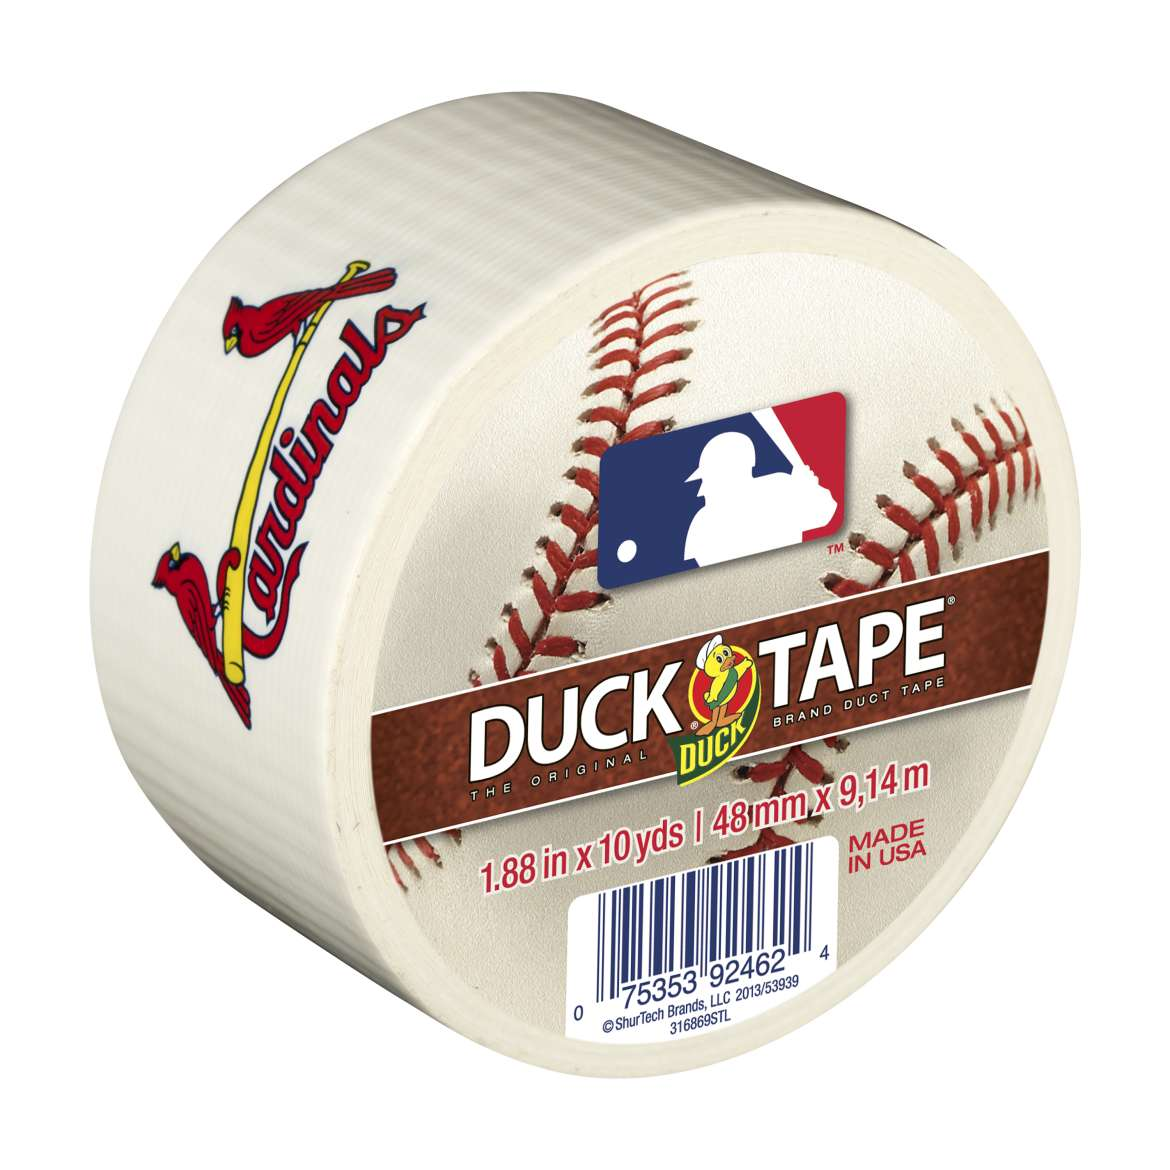 Duck Brand MLB Licensed Duct Tape, 1.88 in. x 10 yds., St. Louis Cardinals